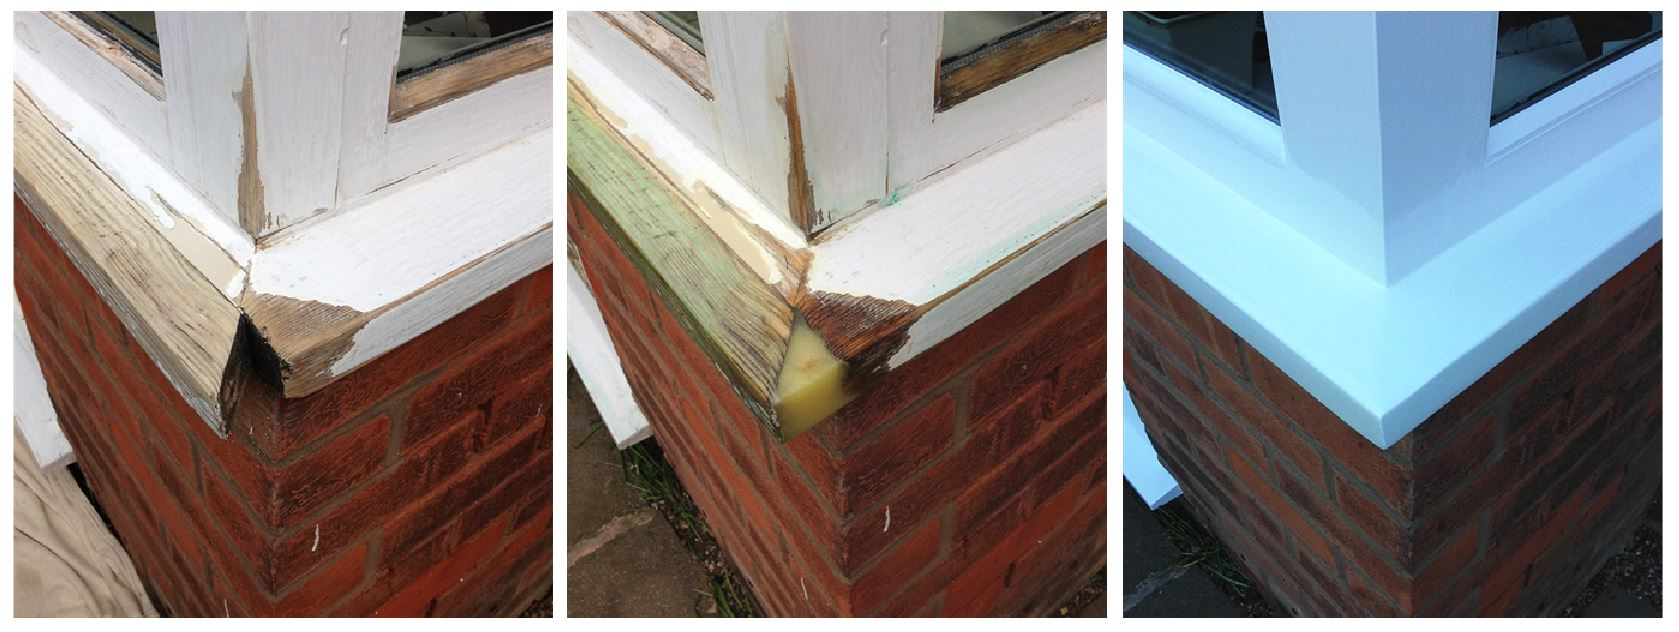 Three stages of woodwork repair and external decoration, using the Repair Care specialist range of products and methods